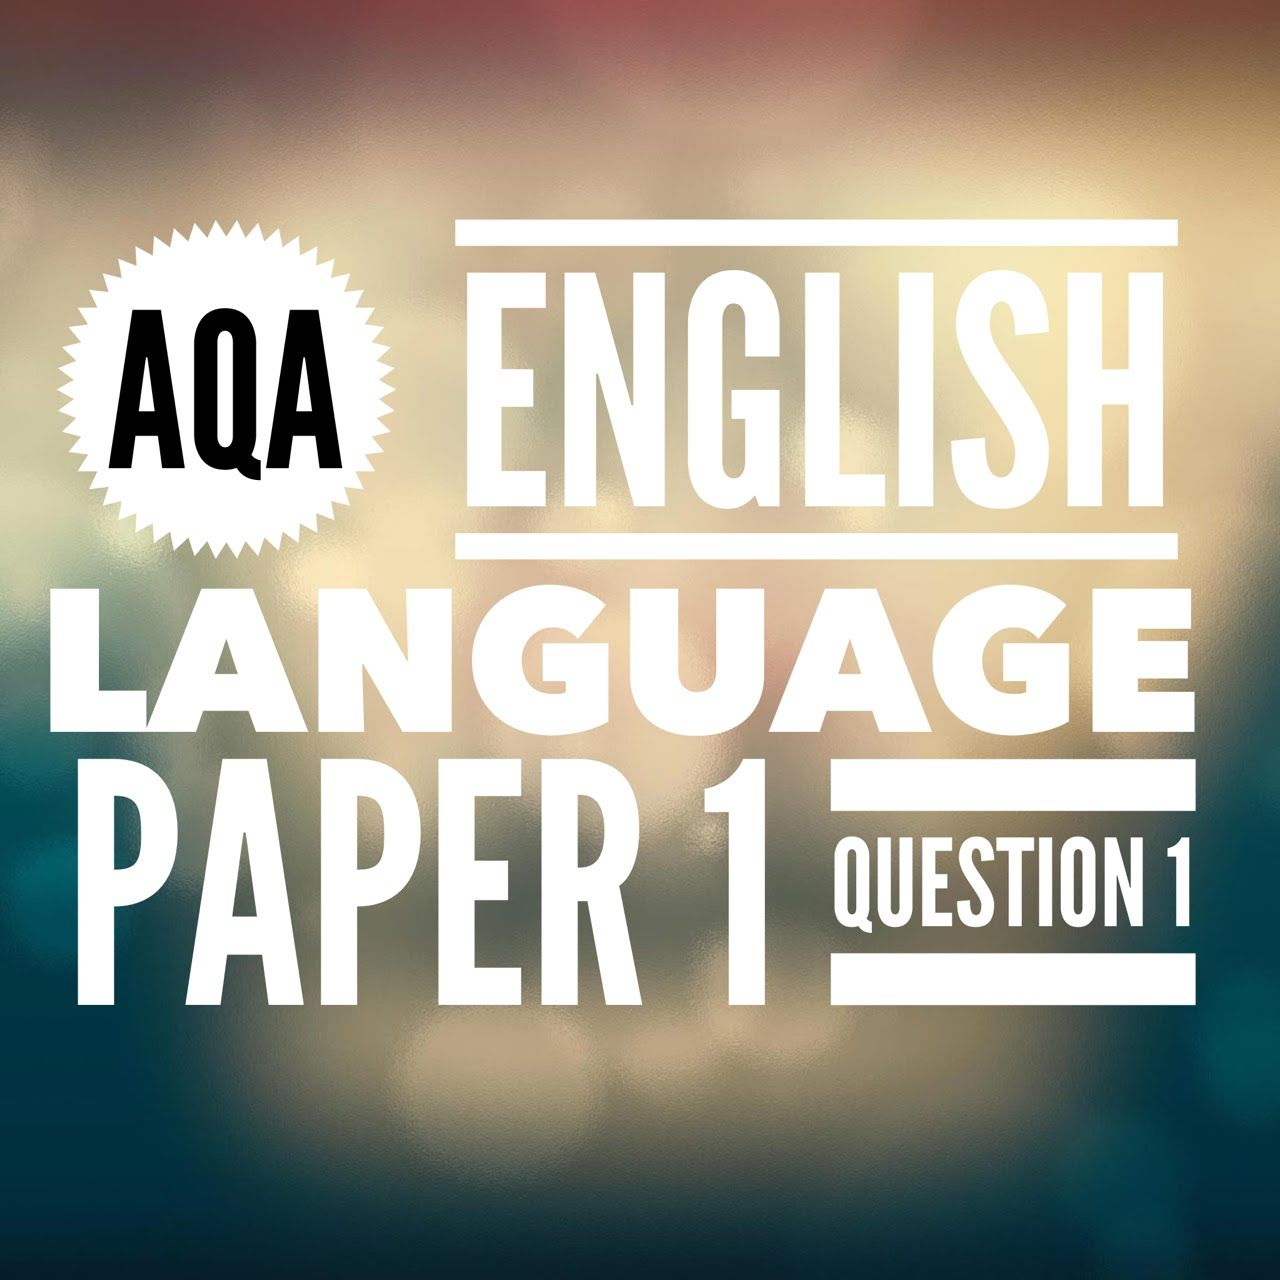 aqa english literature questions English literature 47102h for section a you must have a copy of the aqa poetry anthology moon on the tides in the examination room gcse english literature question paper unit 2h - poetry across time june 2011 author: aqa subject.